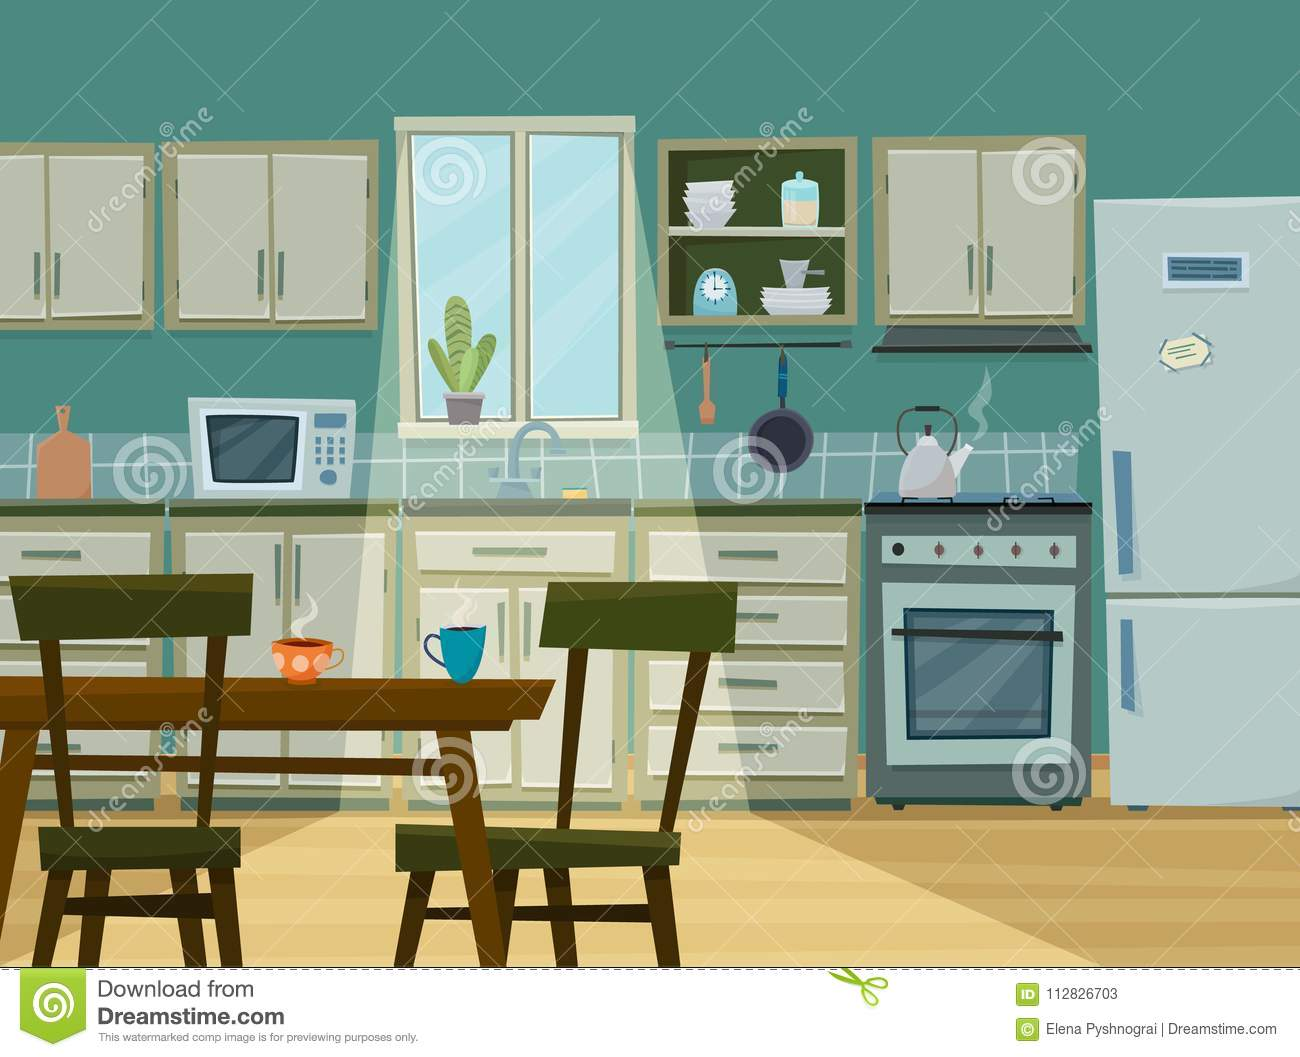 Cozy Kitchen Interior With Furniture And Stove Stock Vector ...